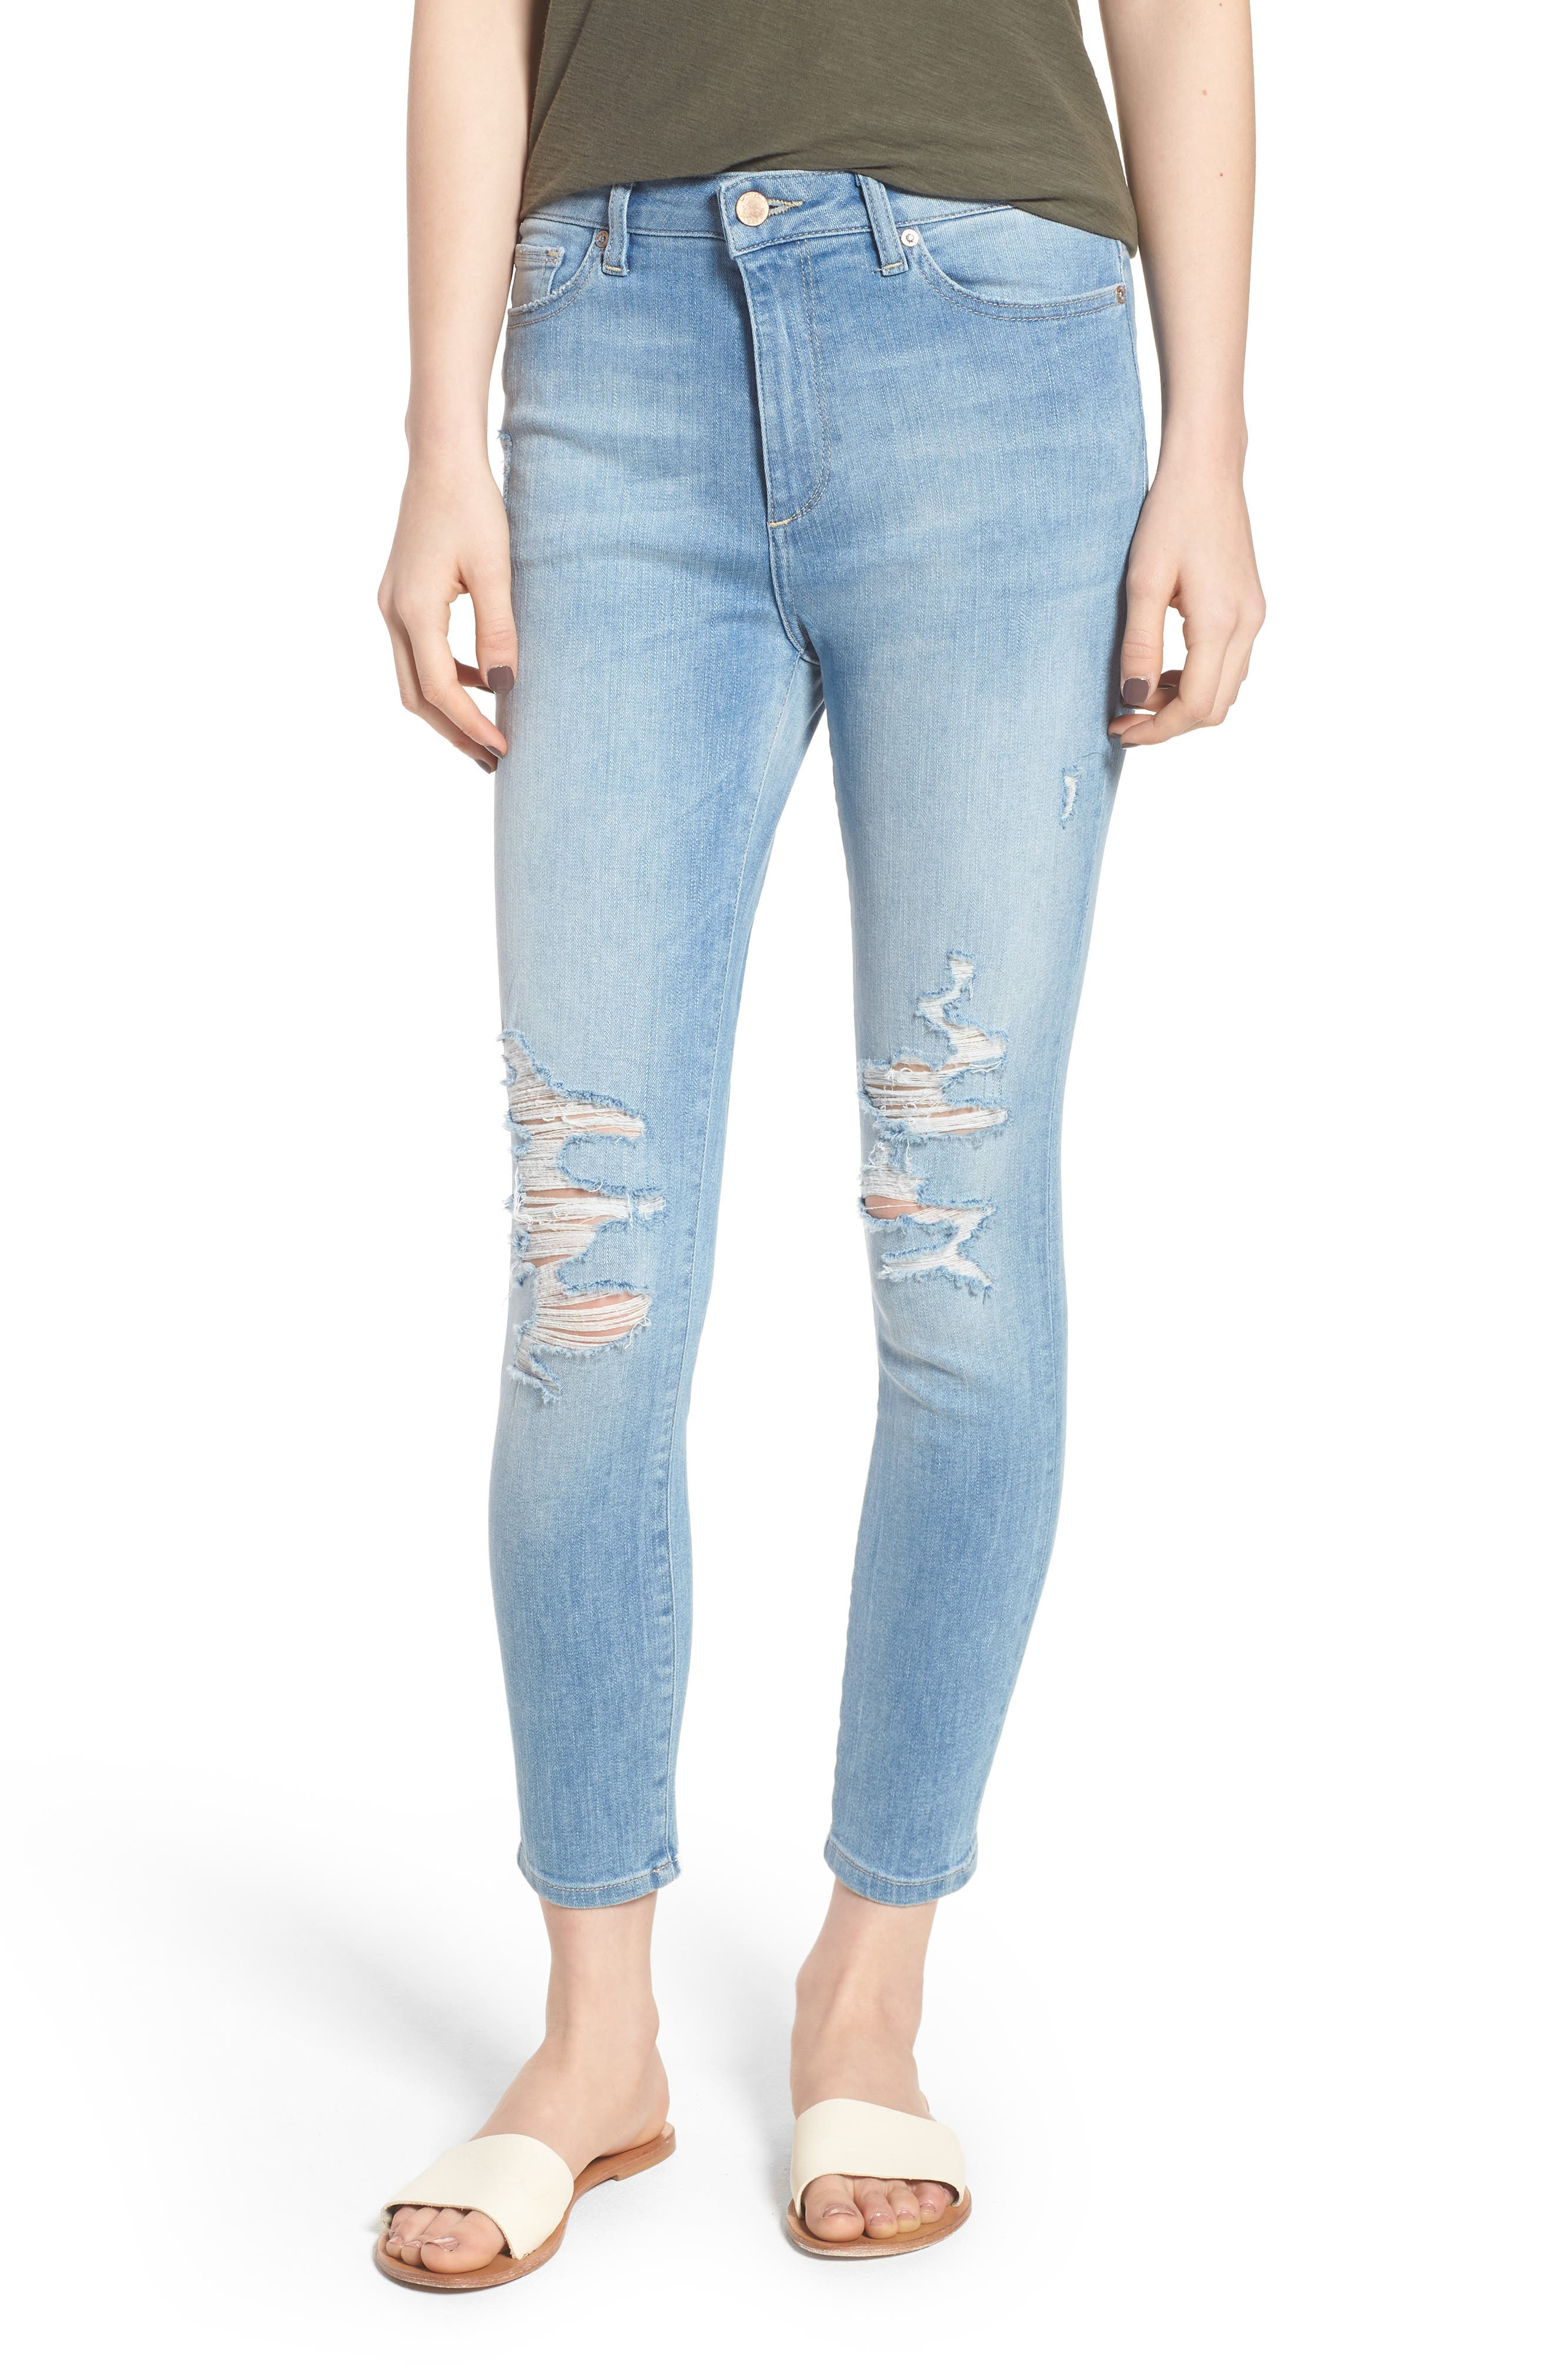 DL1961 Chrissy Trimtone Ripped High Waist Skinny Jeans (Walker)